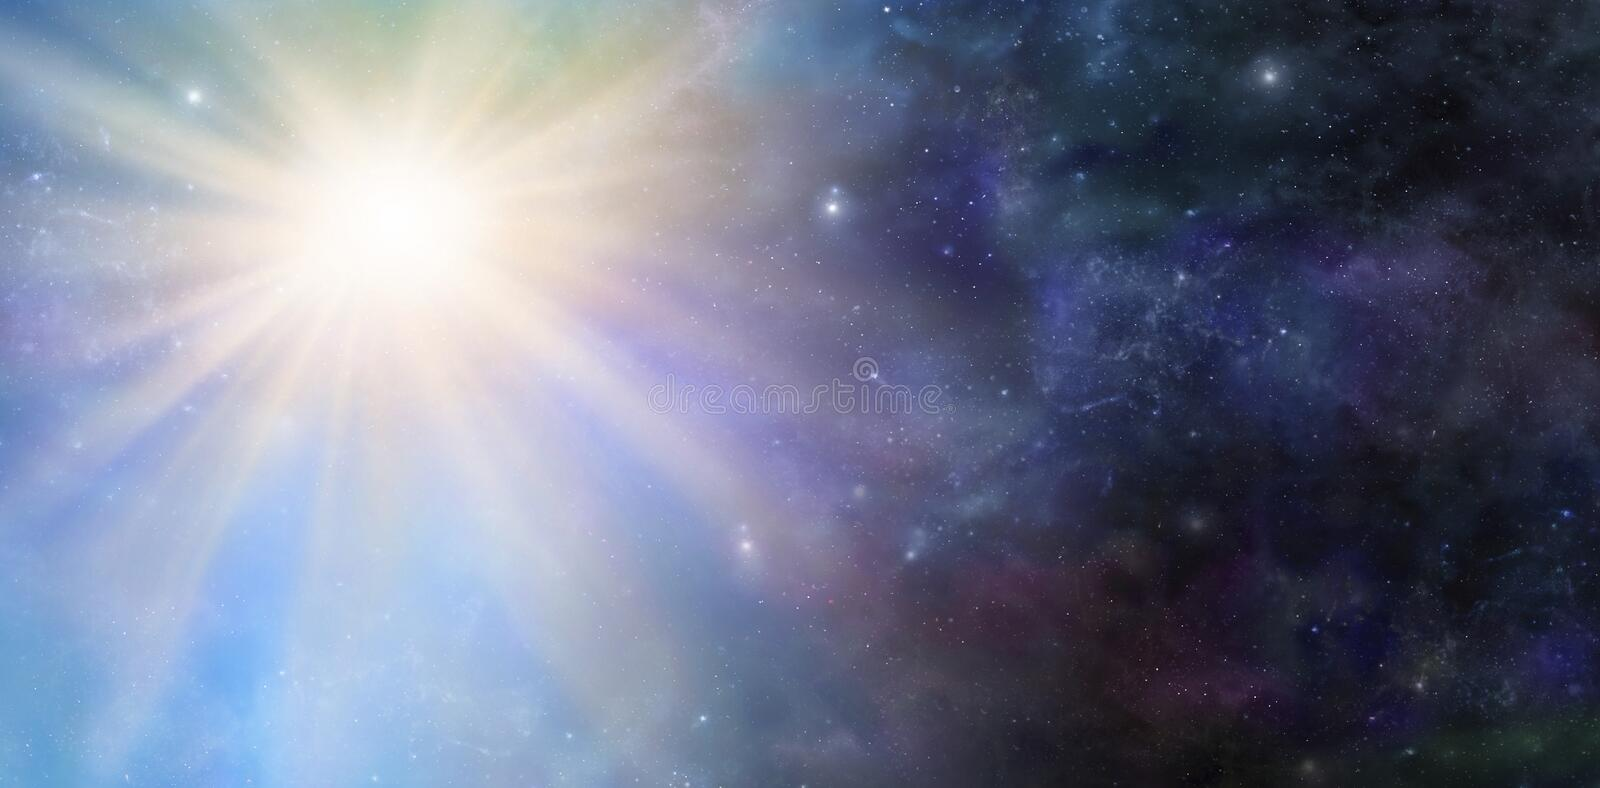 Deep Space Big Bang Event. Wide panel of dark starry outer space with a massive light burst big bang phenomenal event stock photos